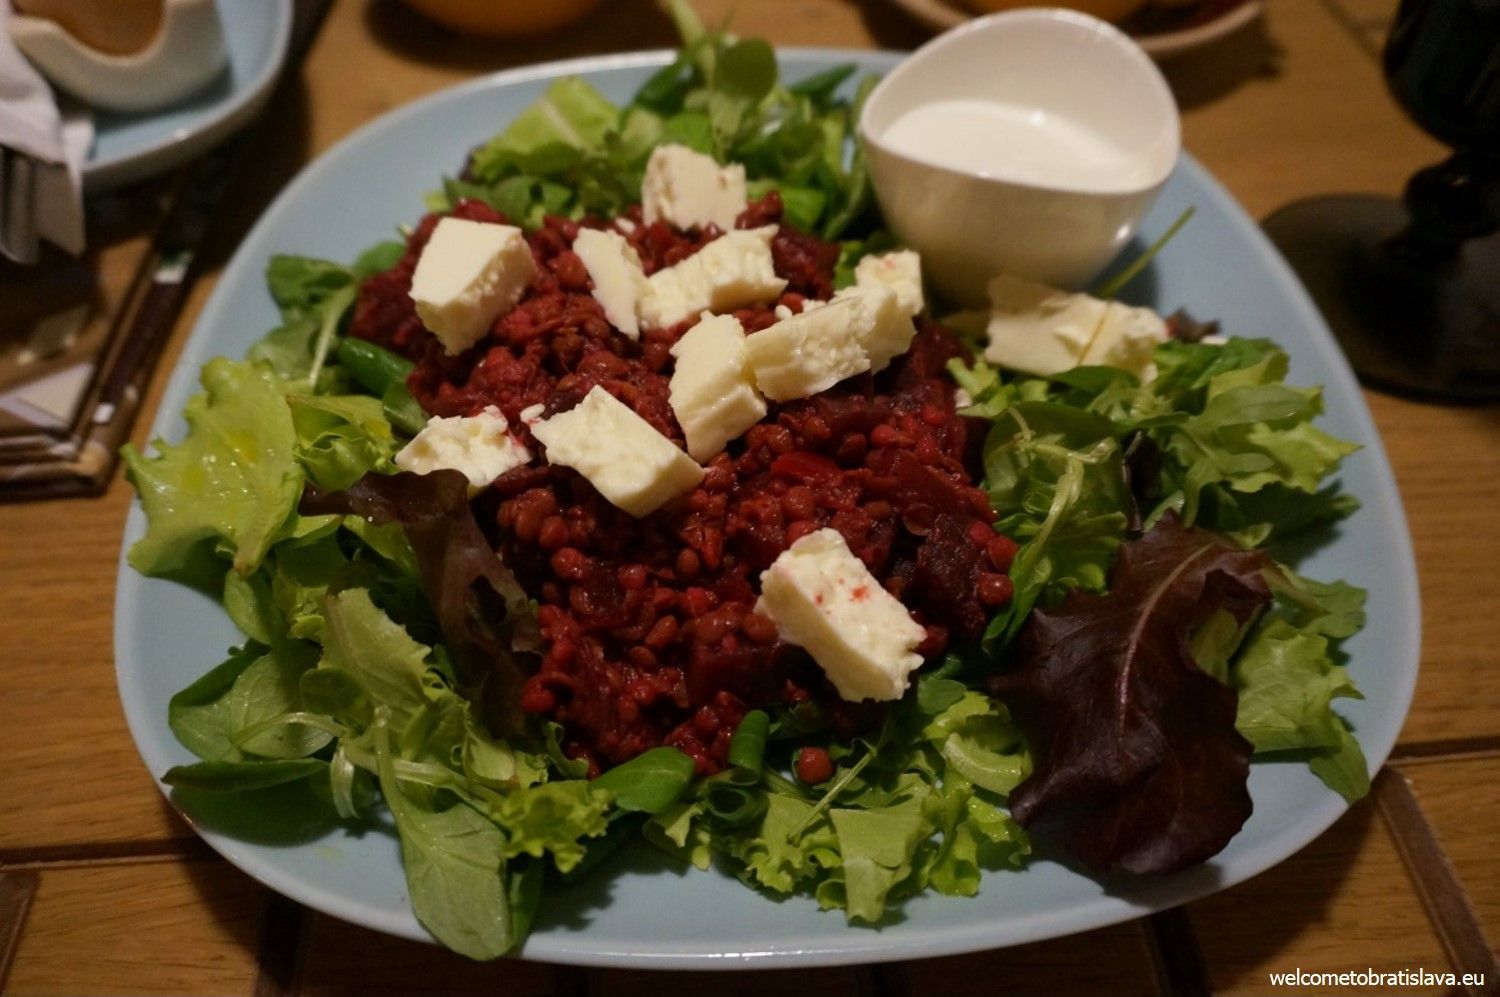 Their warm lentil salad with beetroot and cheese is phenomenal